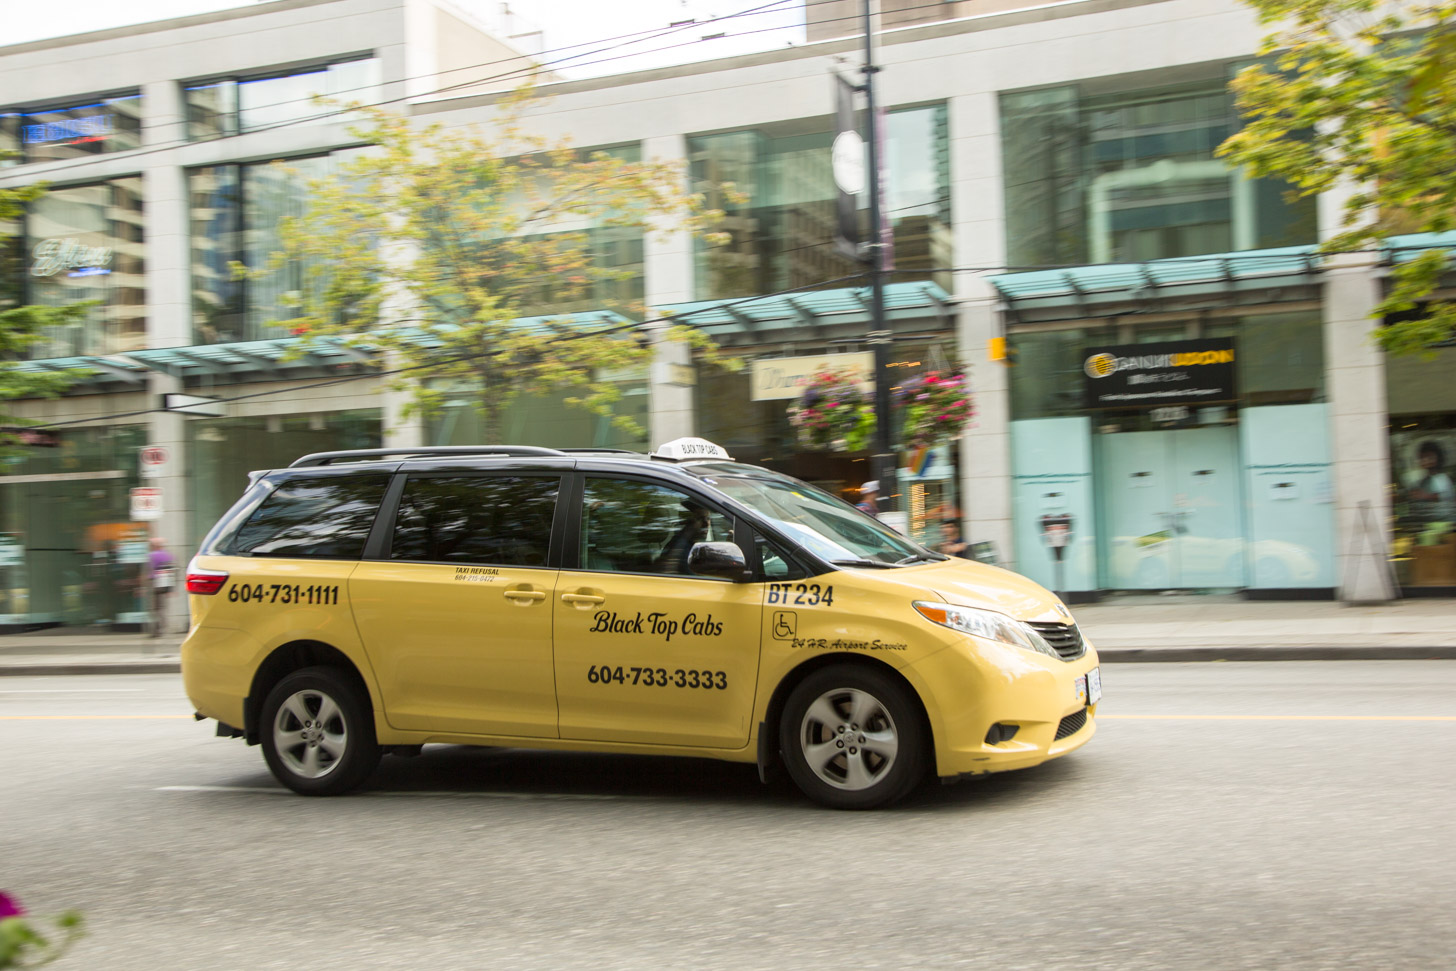 Taxi in Vancouver